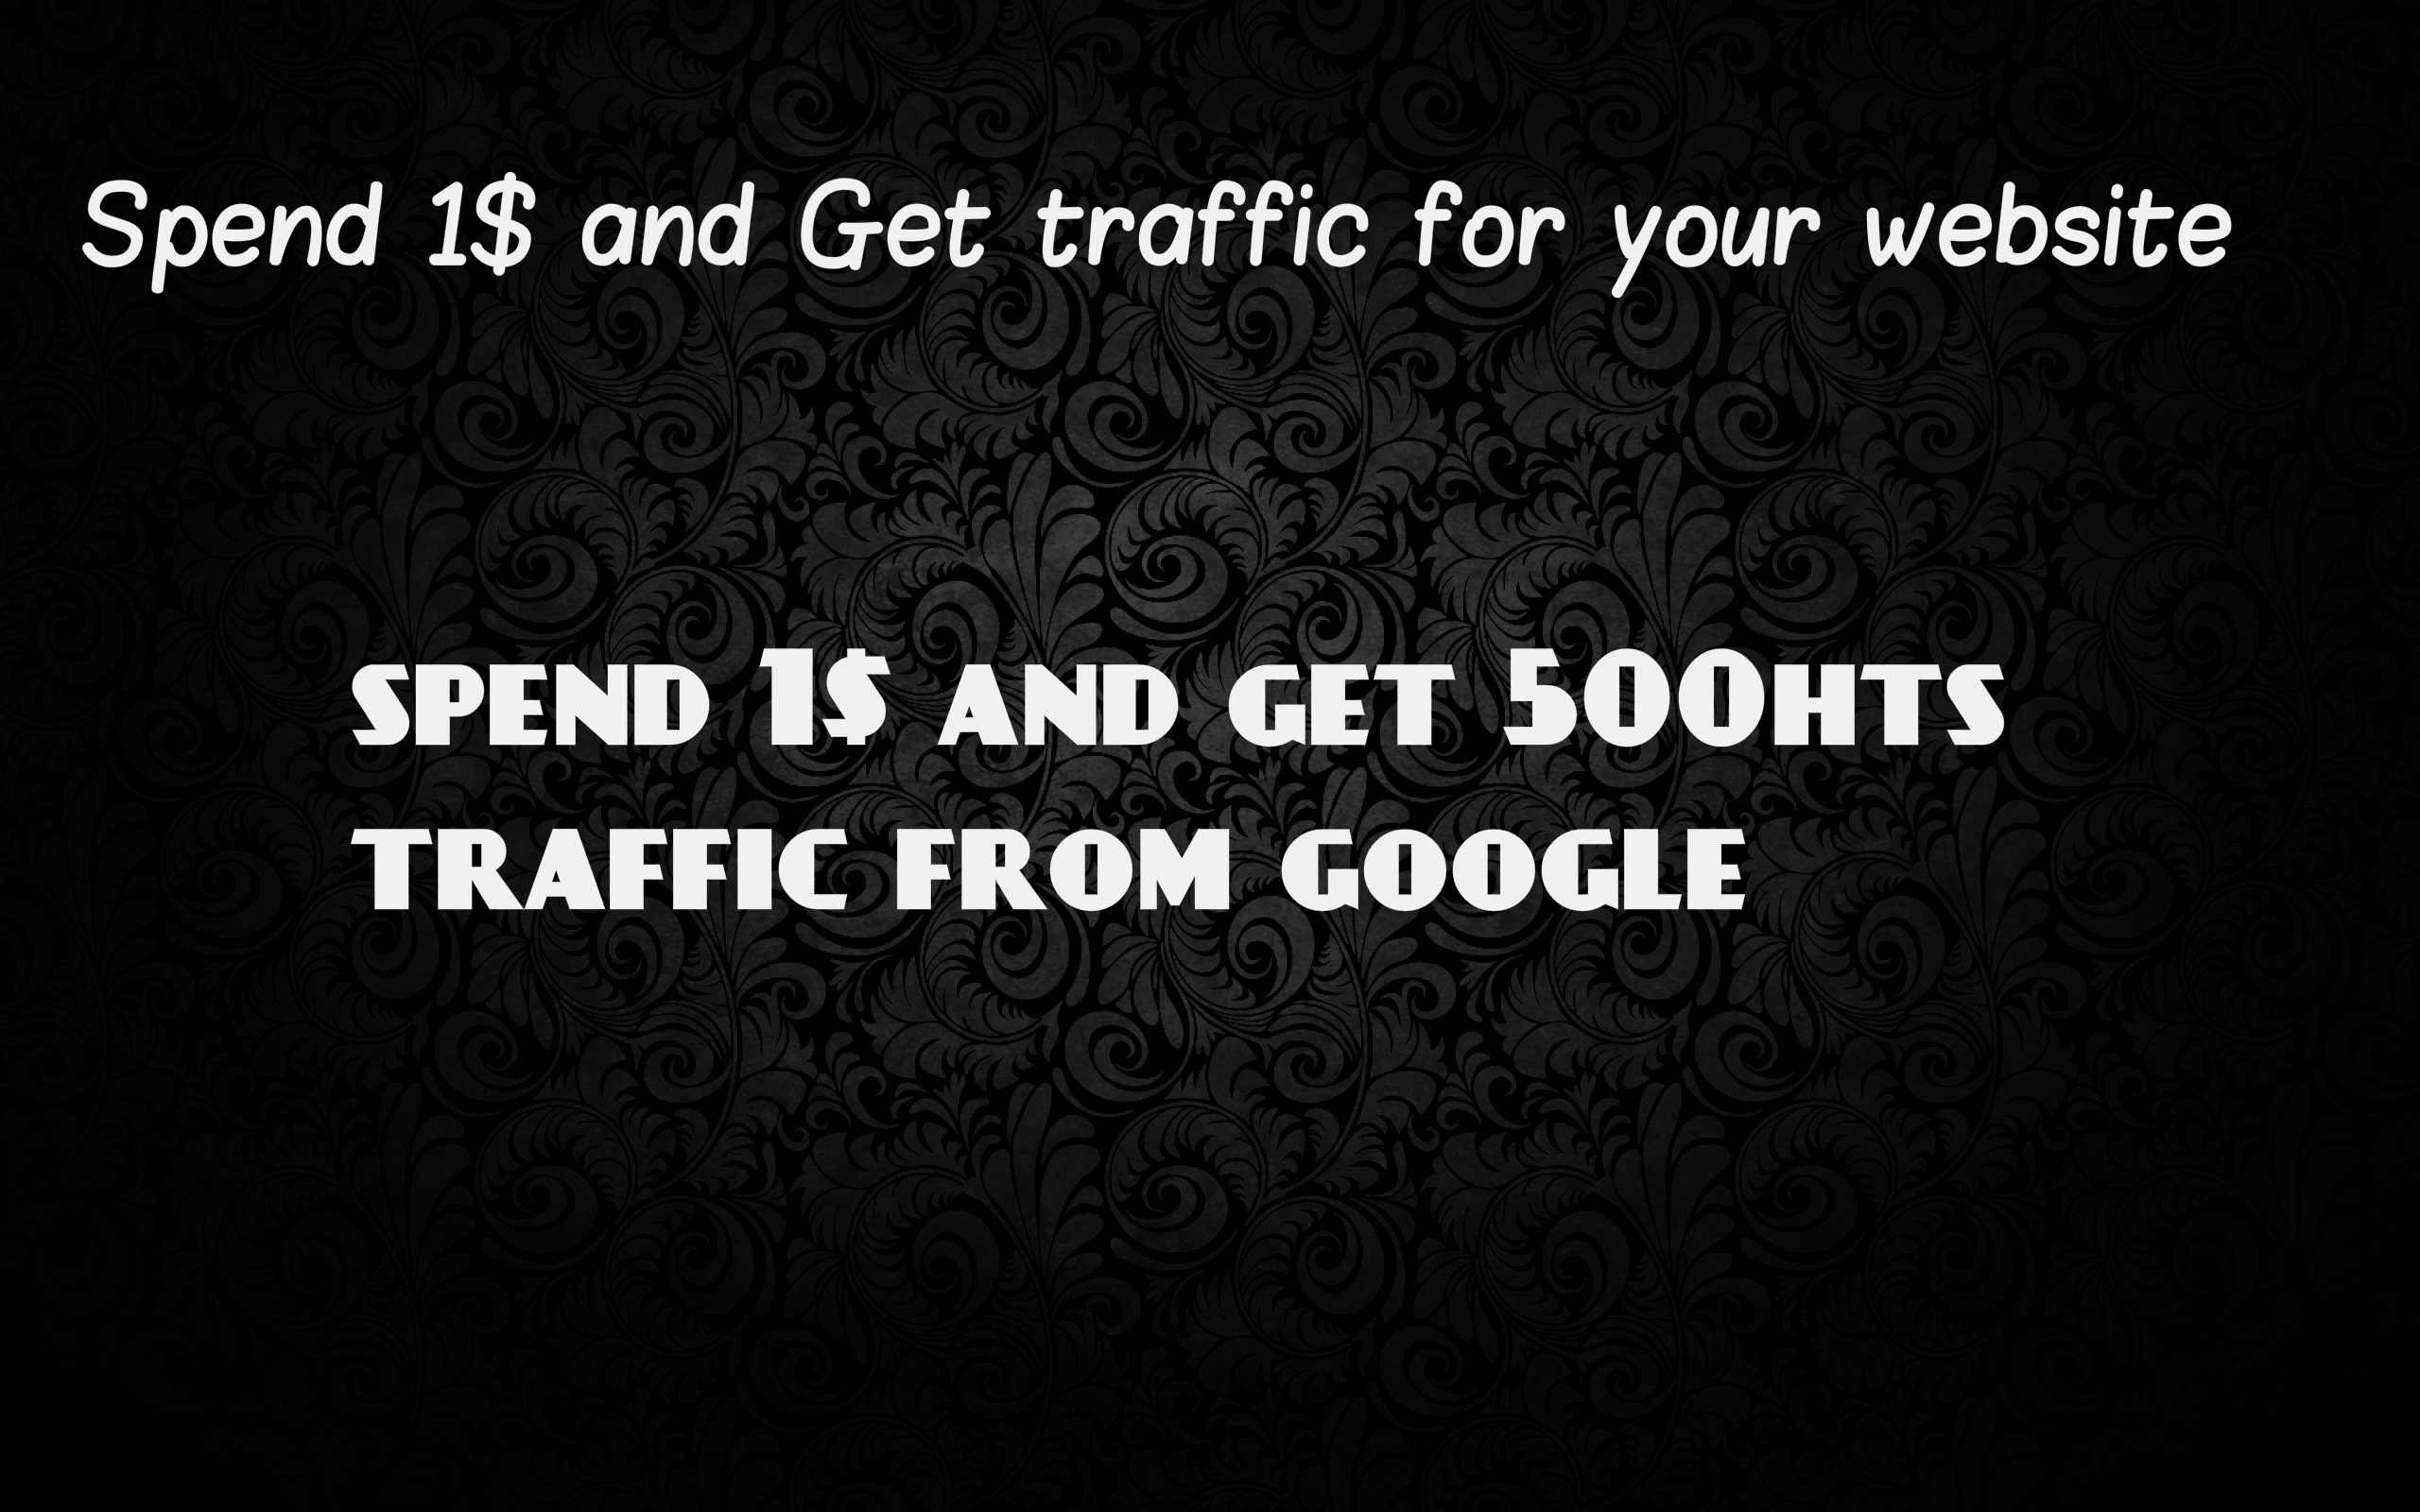 Get Organic,  social,  direct traffic for 1 Directly form USA